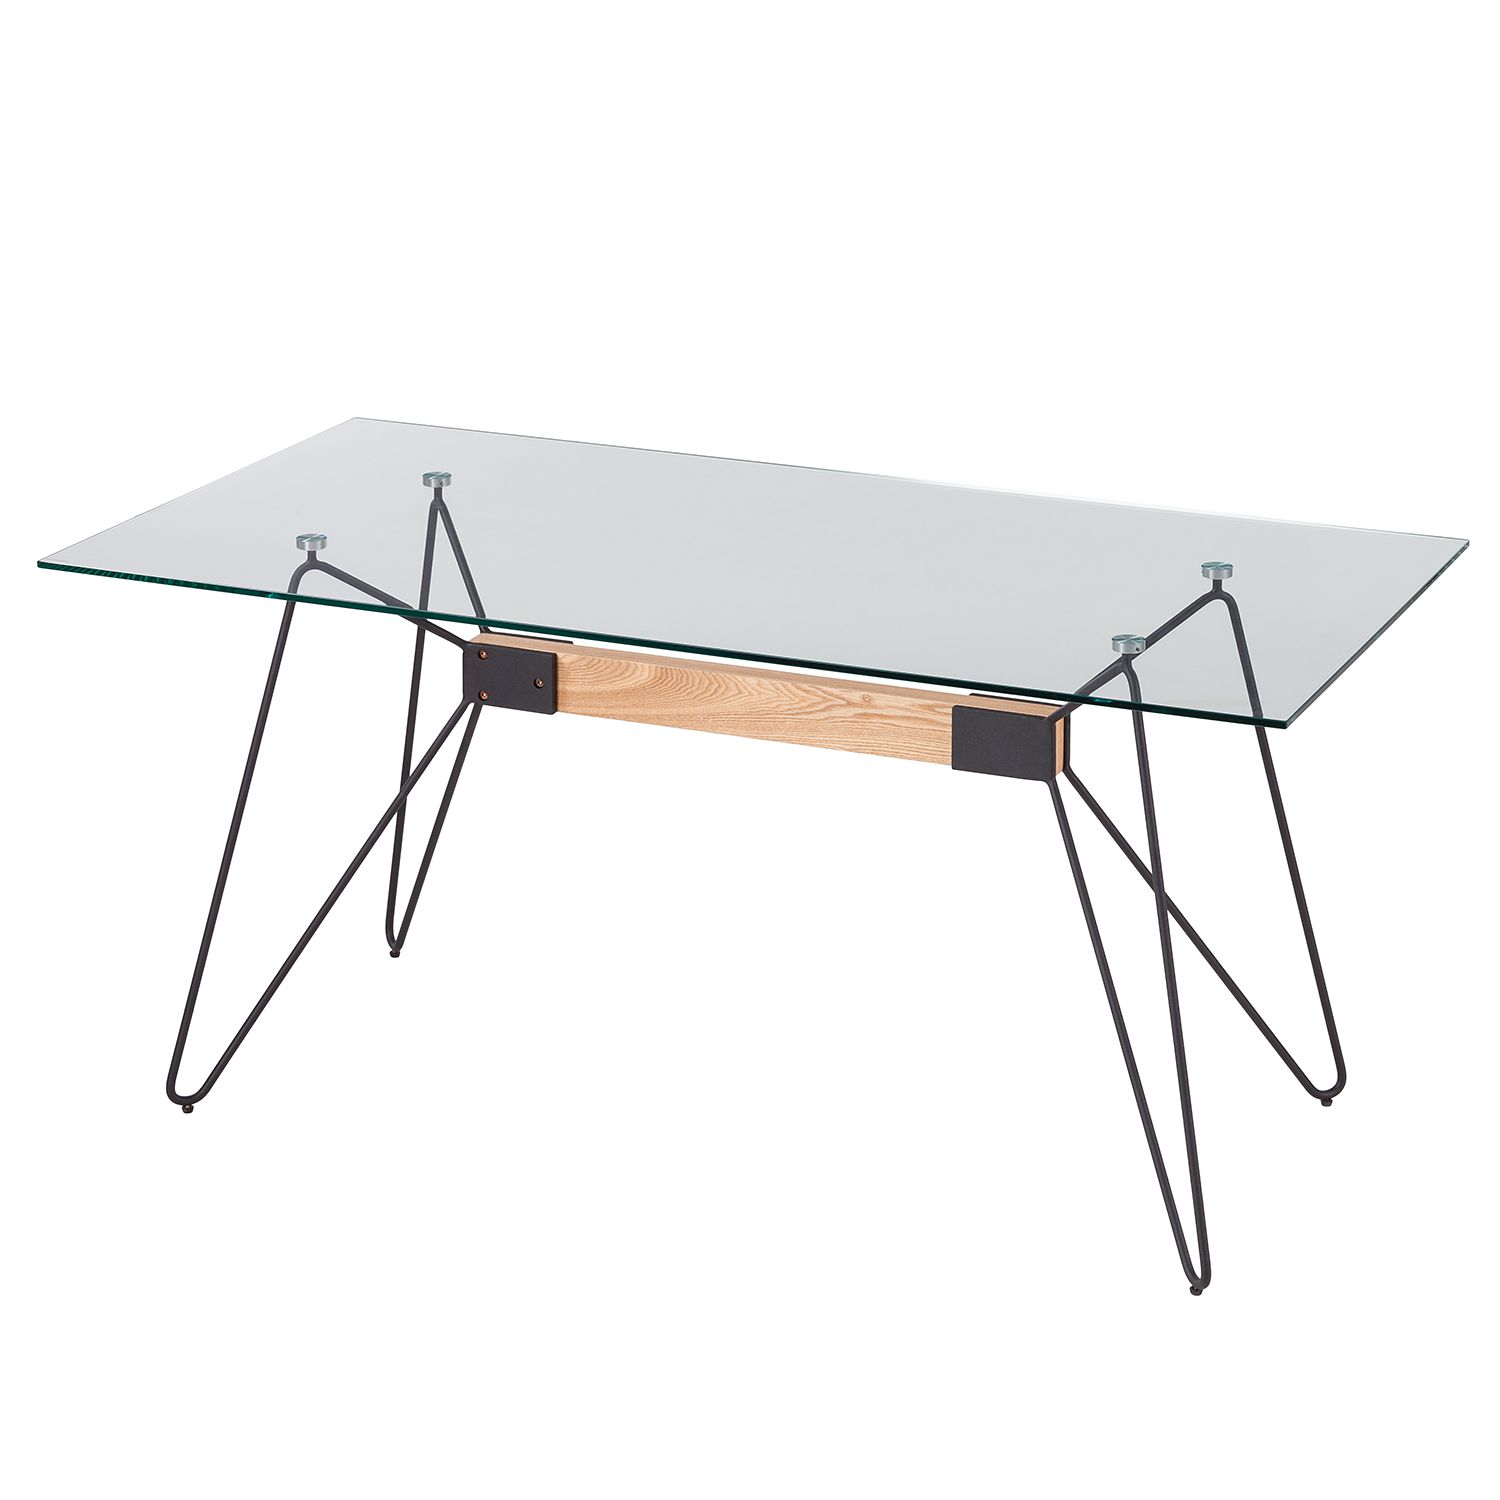 Table basse ronde en aluminium d 91 cm nomade style ongles for Table basse nomade